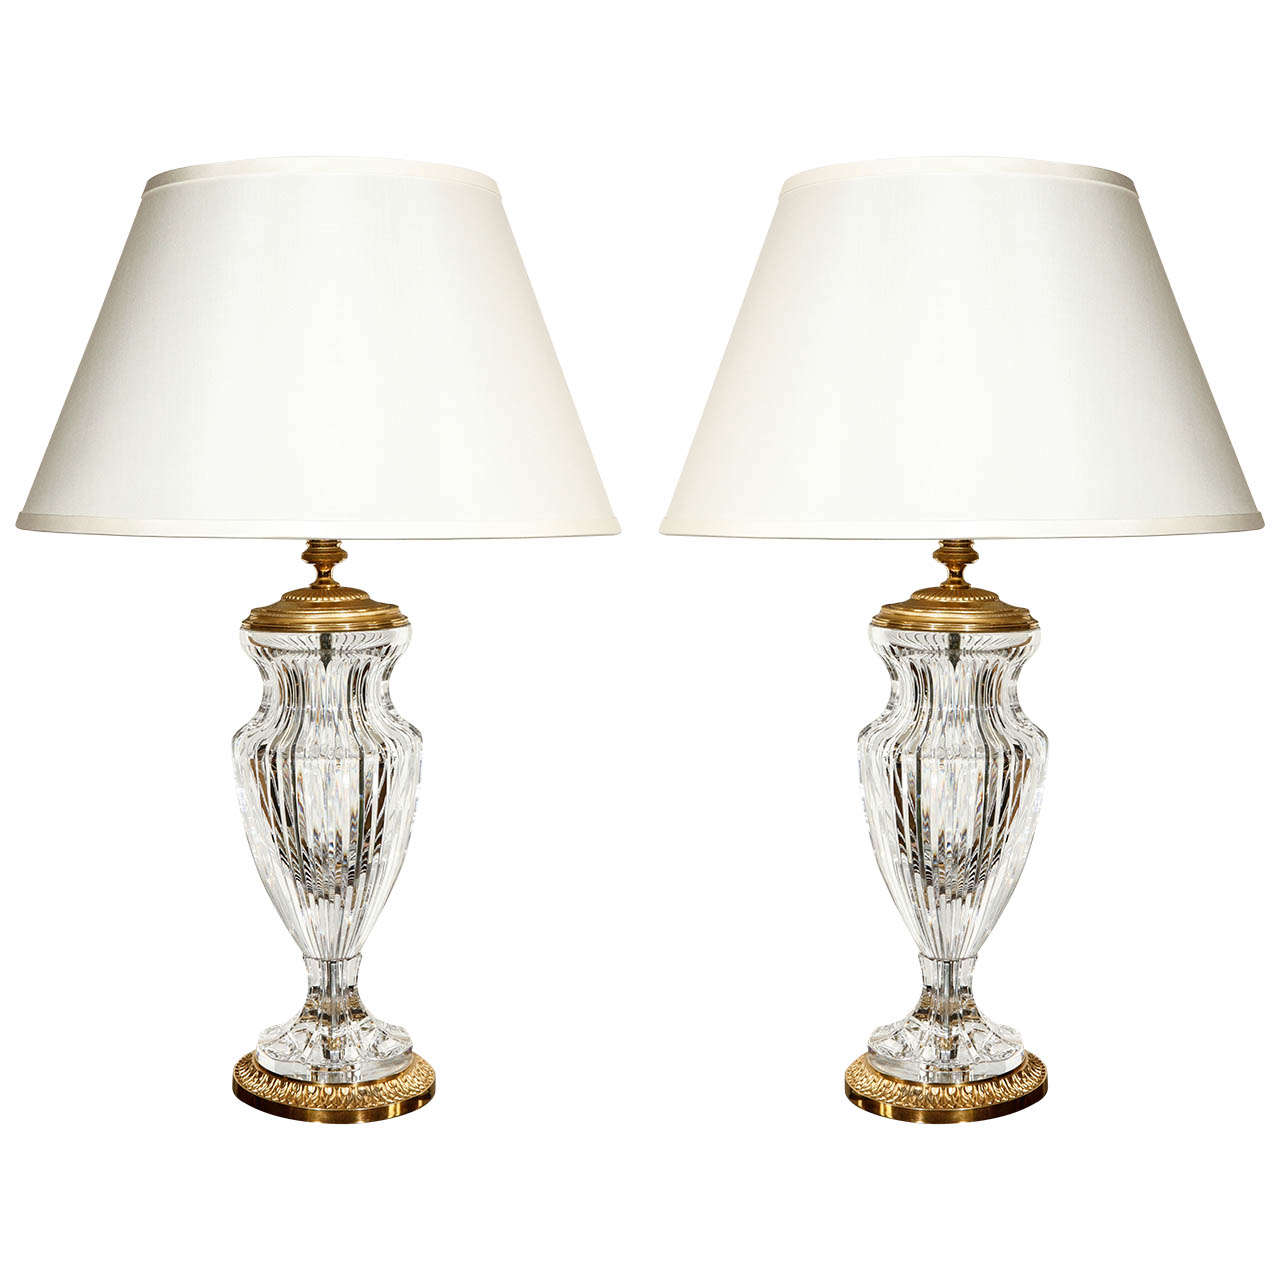 Cut crystal table lamps for sale at 1stdibs for Images of table lamps